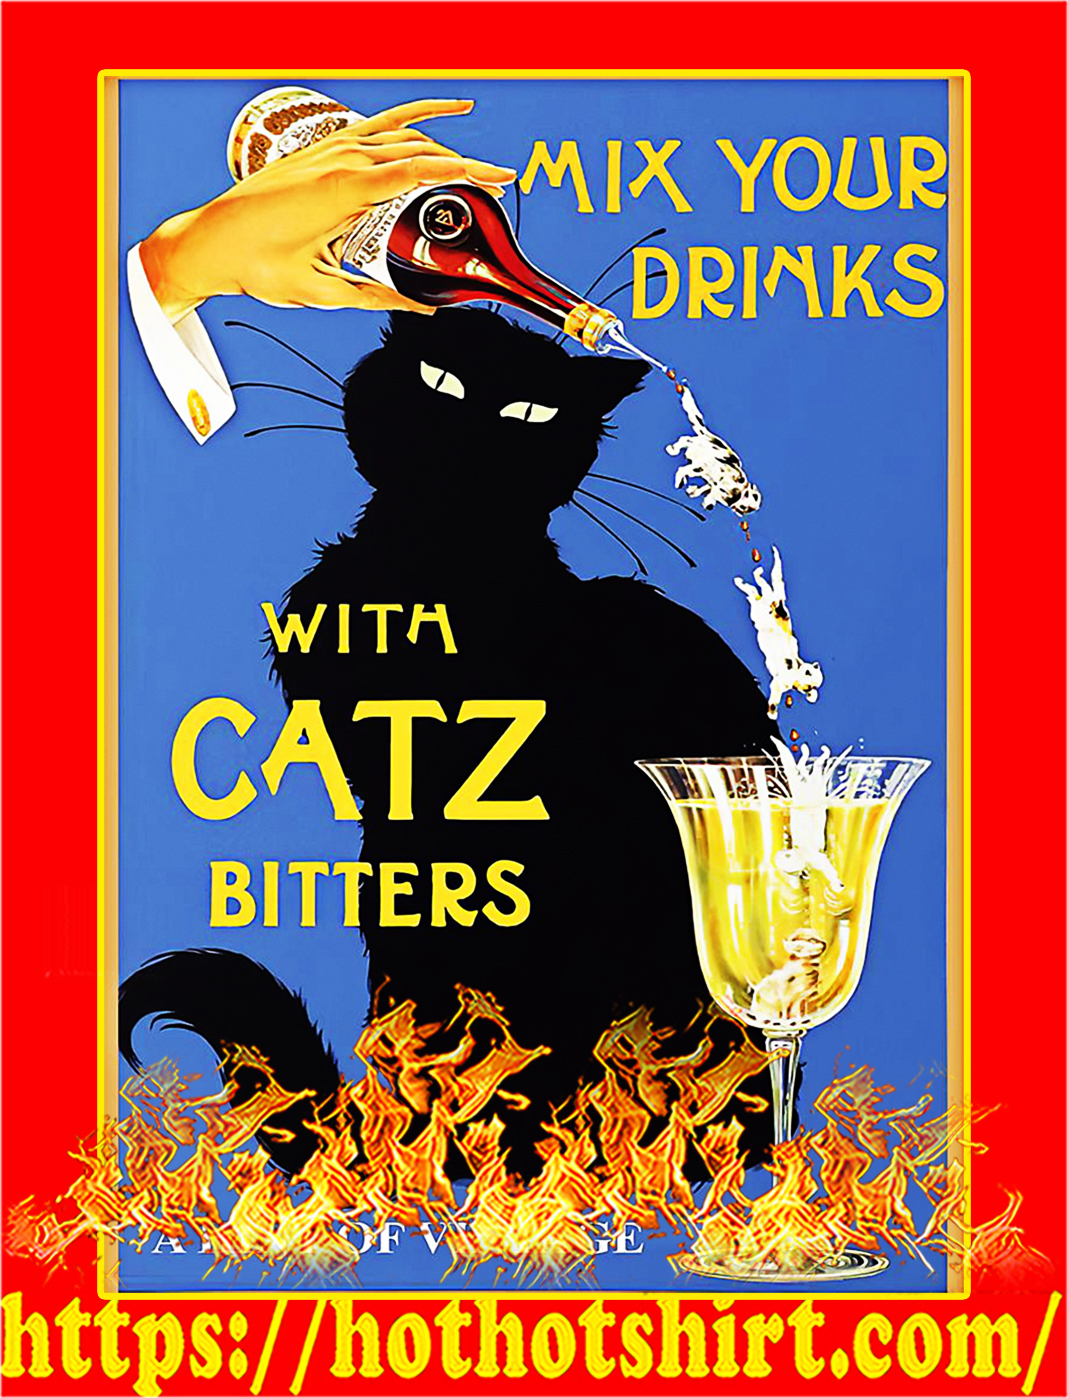 Mix your drinks with catz bitters poster - A2